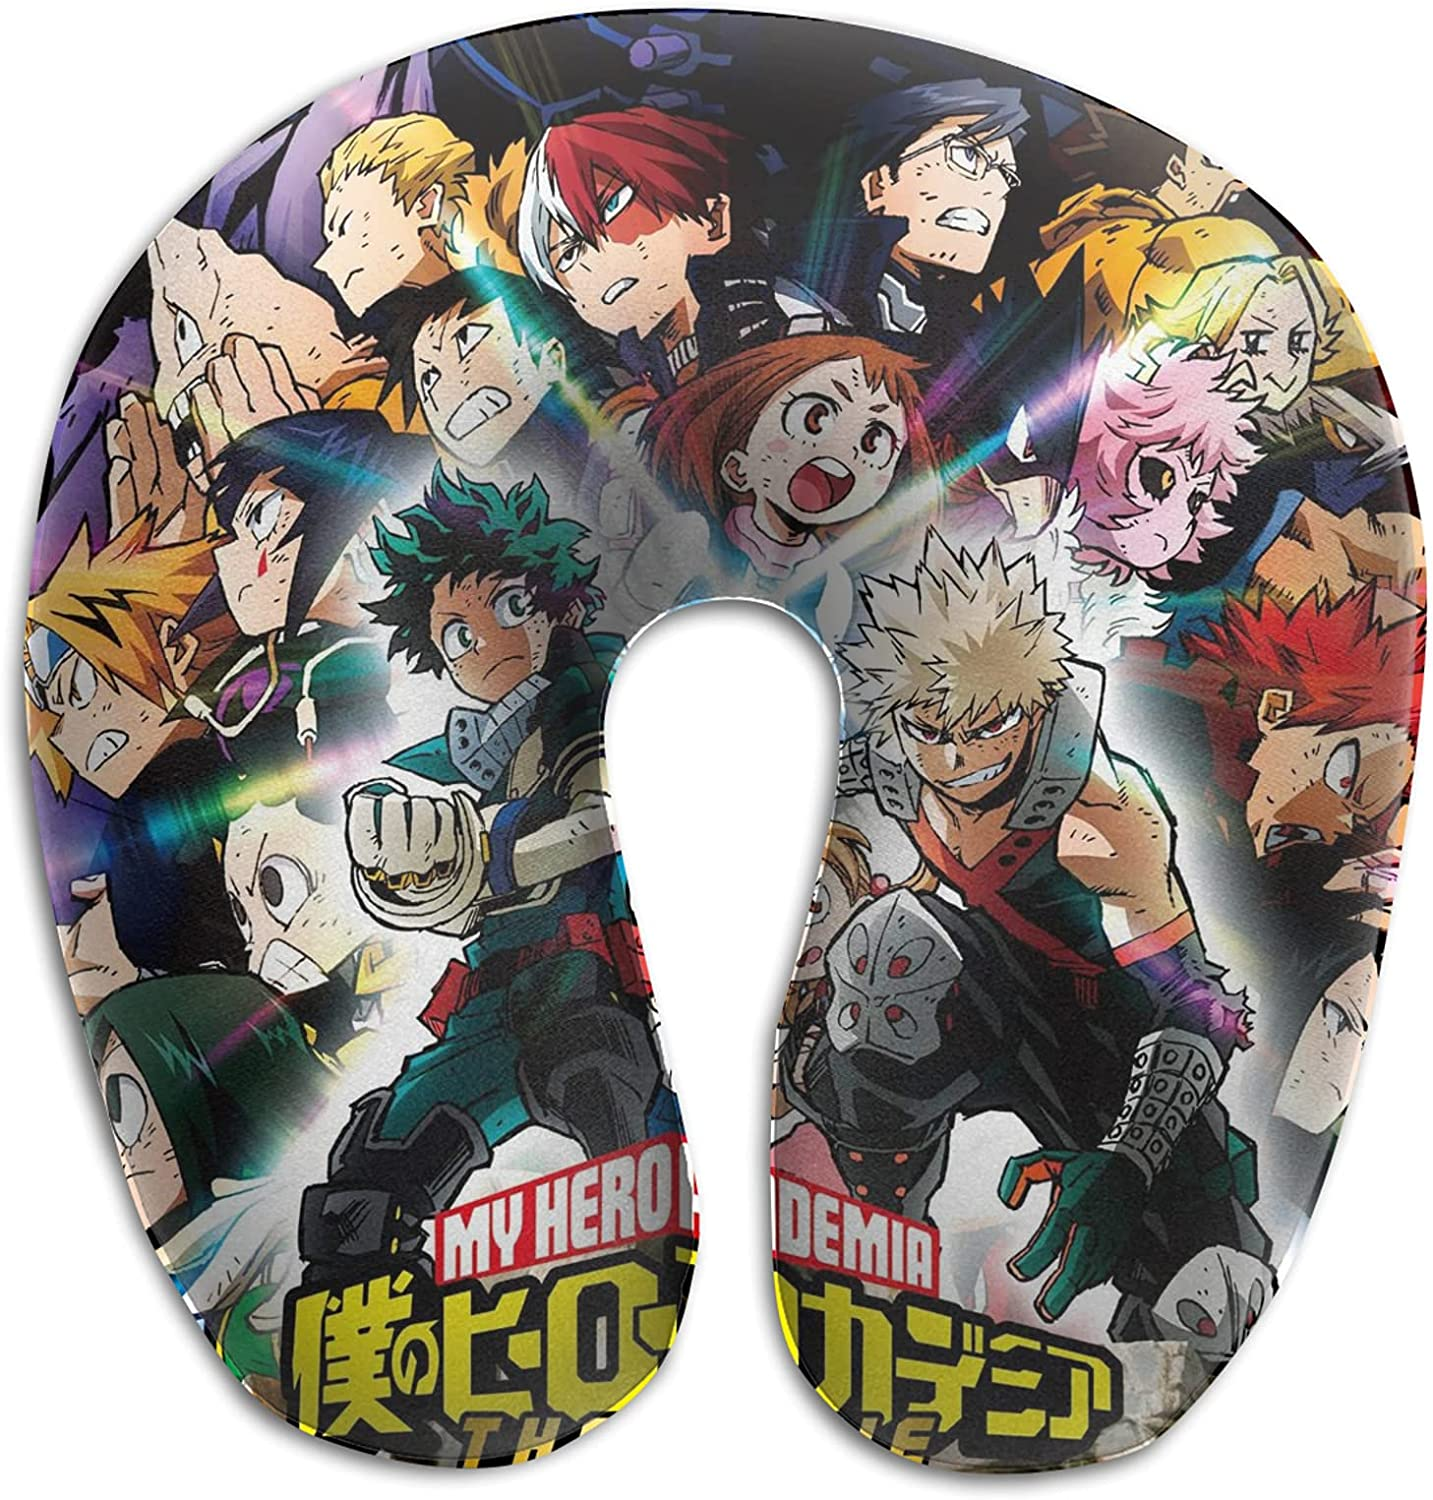 Some reservation My Hero Academia Neck Cervical Soft Pillow Pain Memory Cheap bargain for